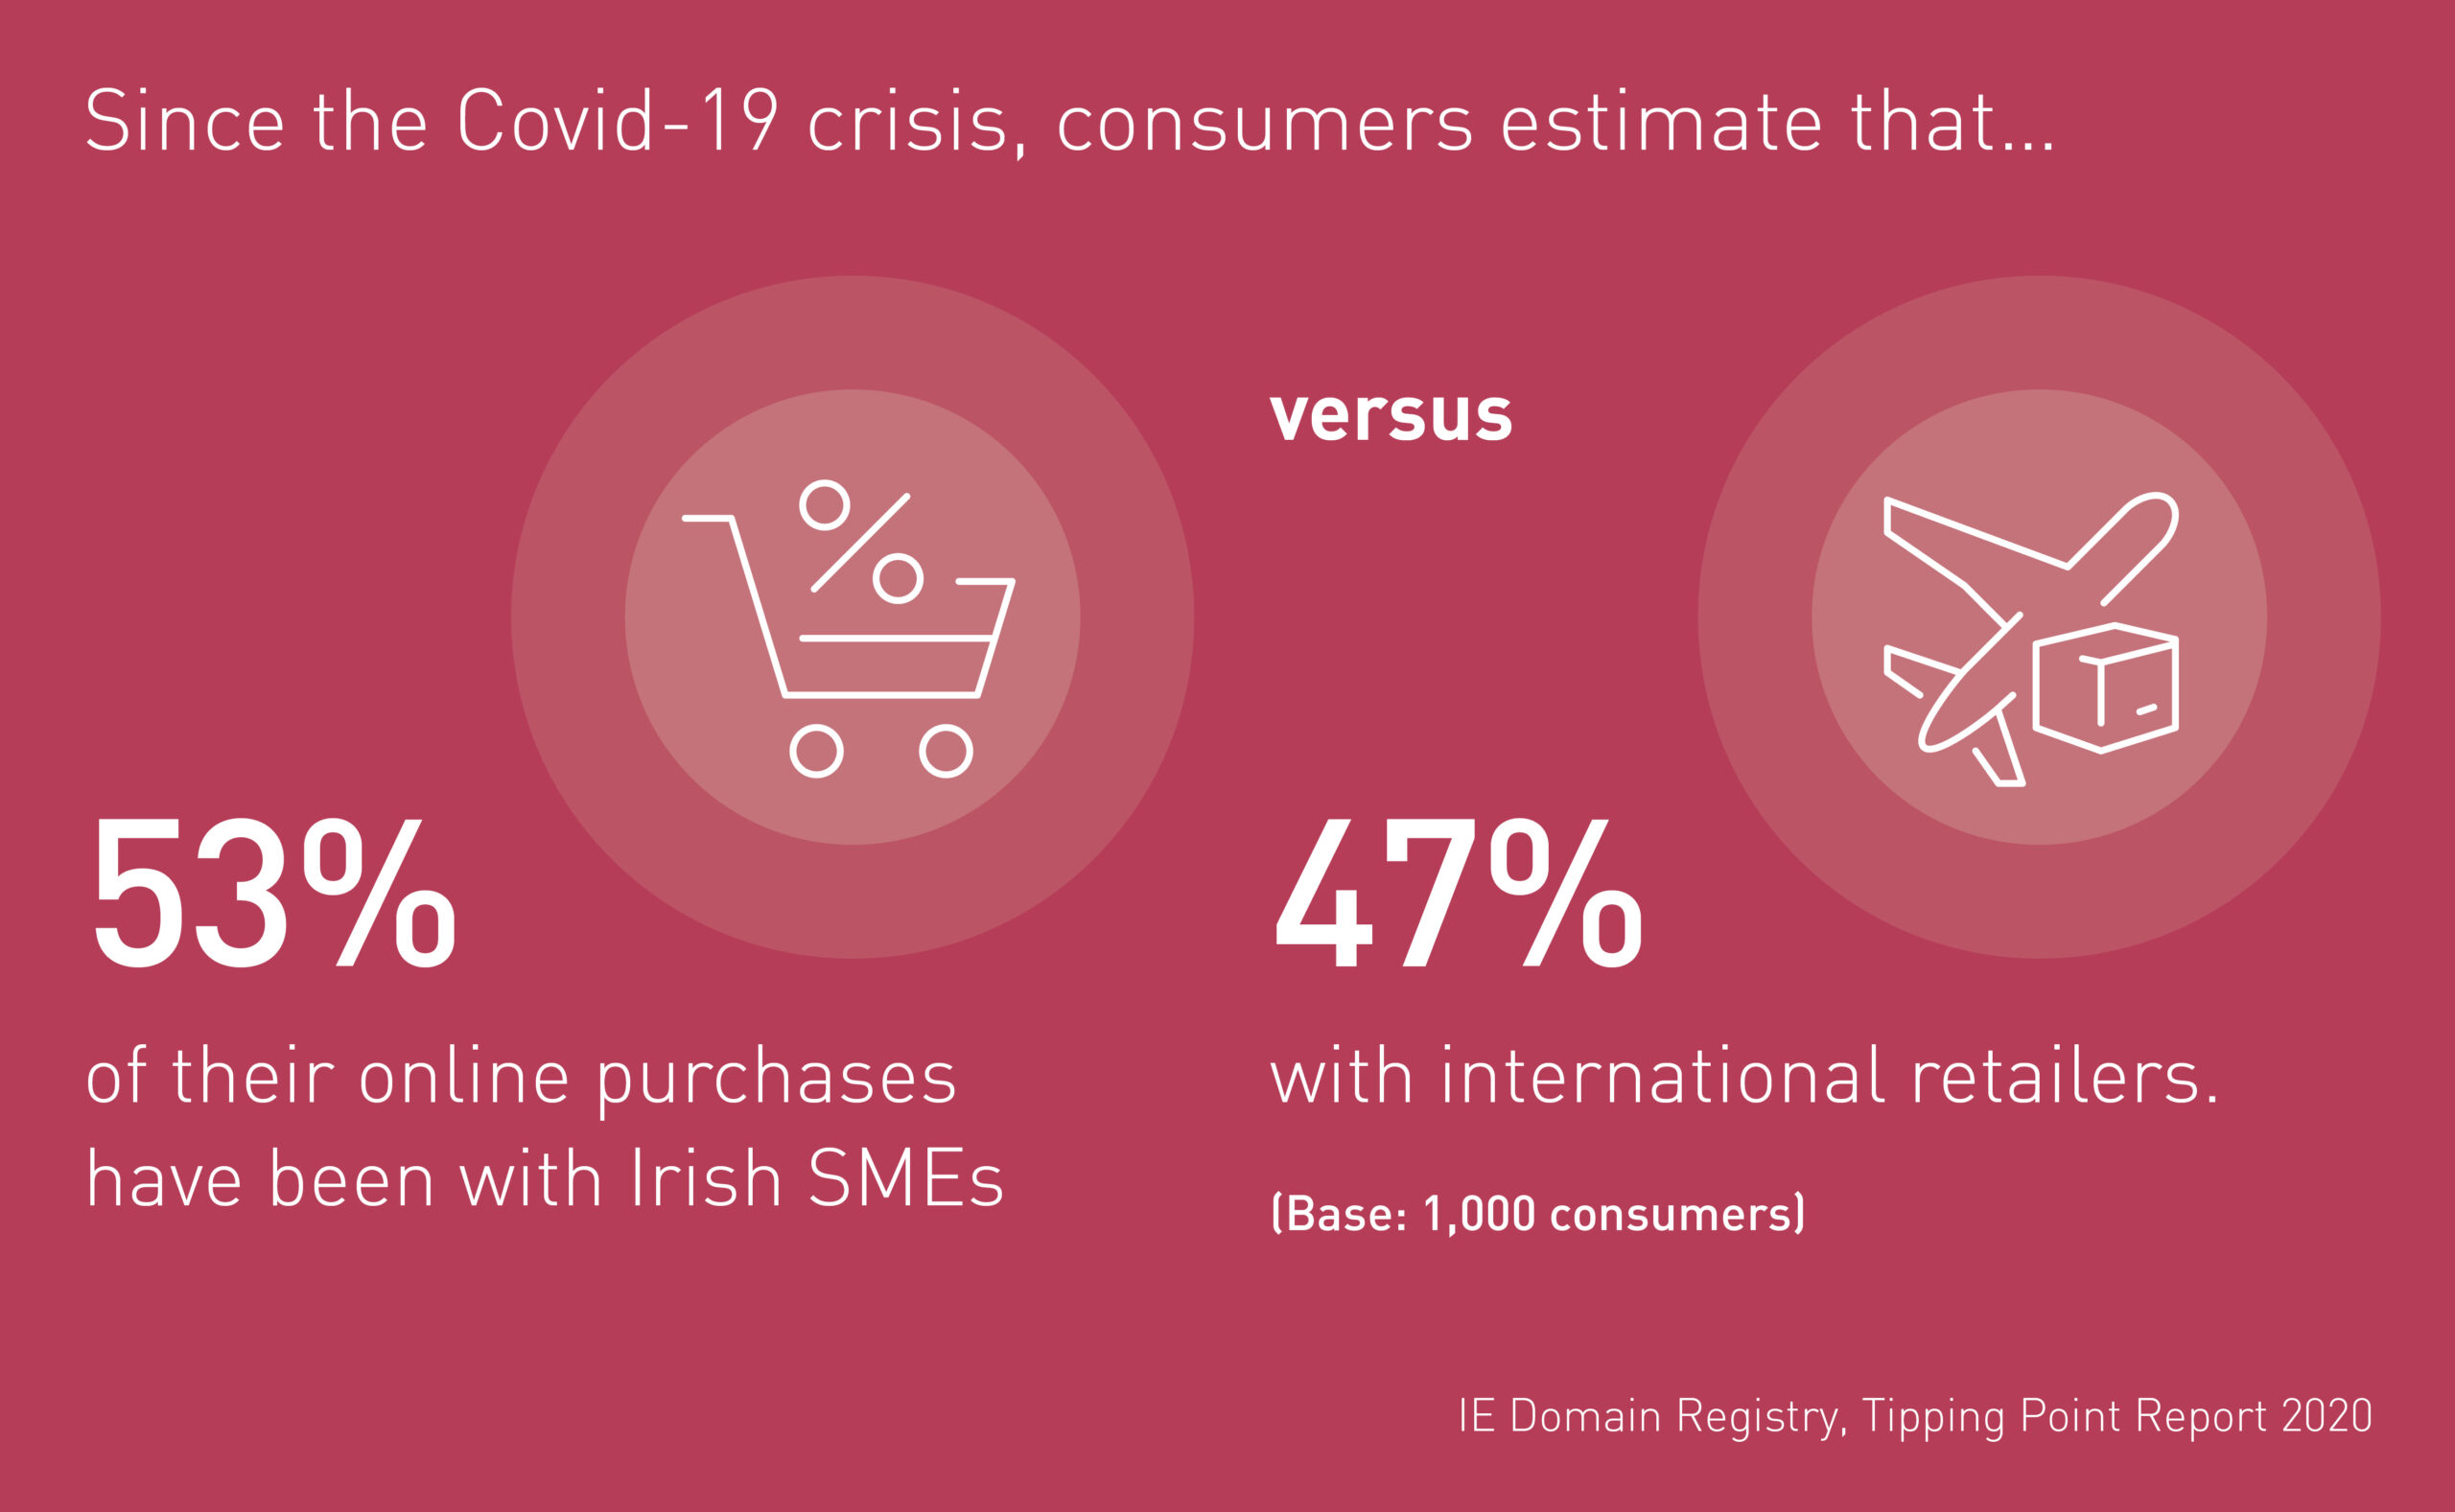 53% of consumer online purchase have been with Irish SMEs